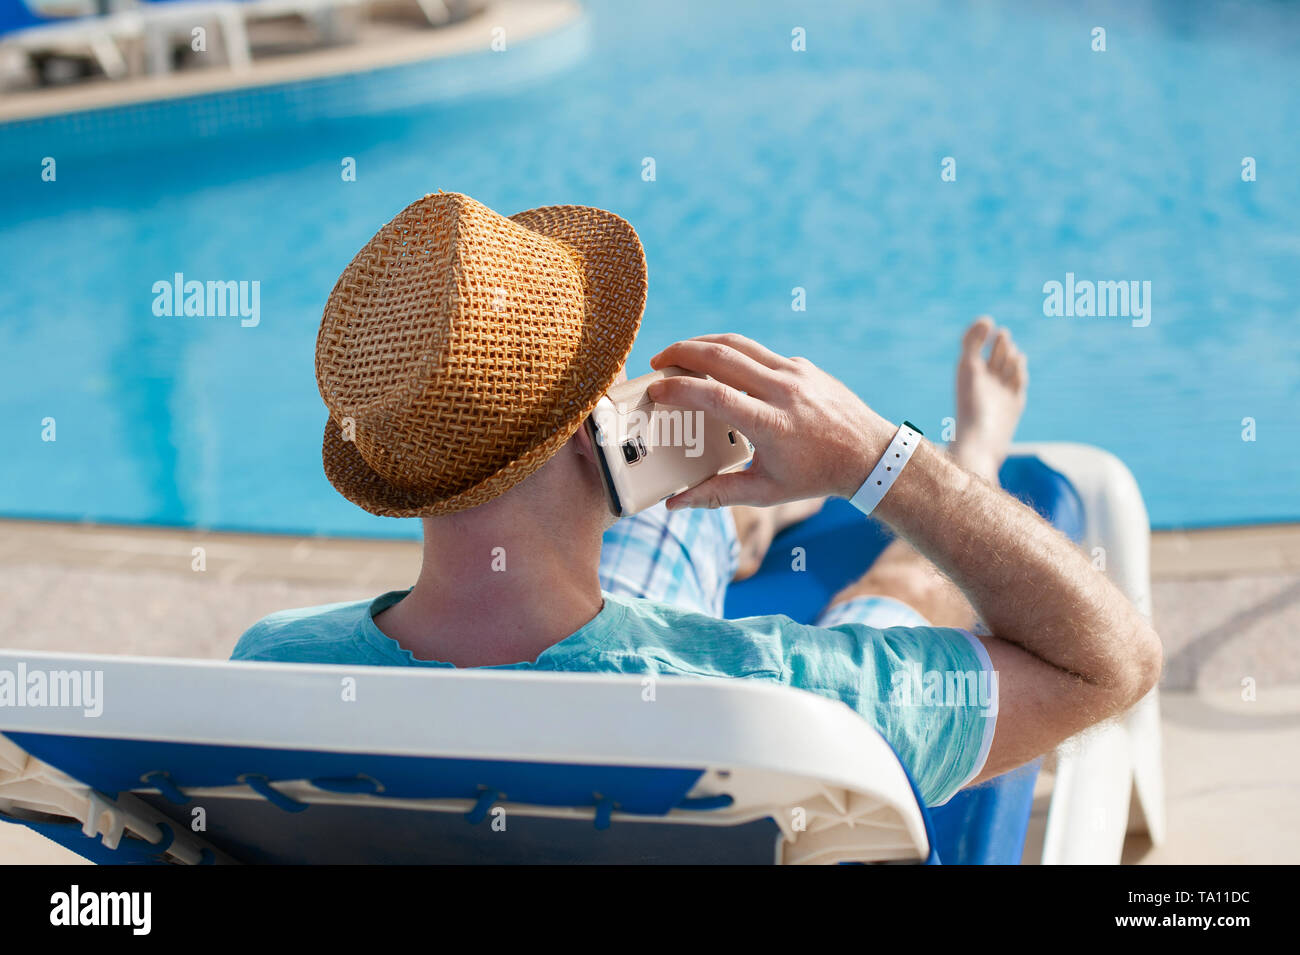 man lying on a lounger and talking on a phone near the pool - Stock Image